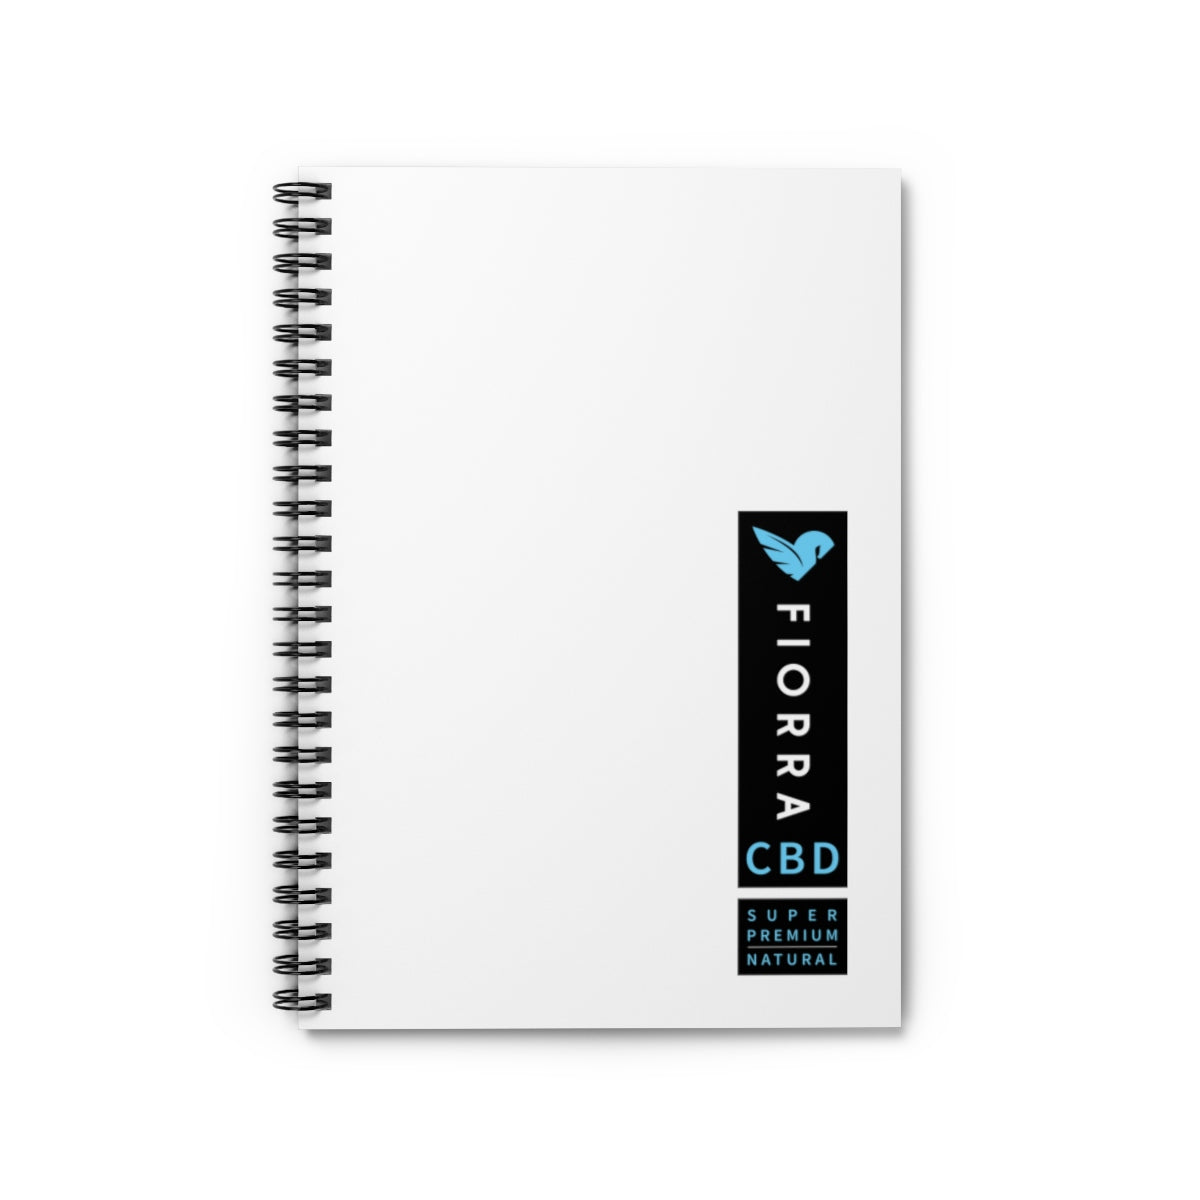 FIORRA CBD Spiral Notebook - Ruled Line